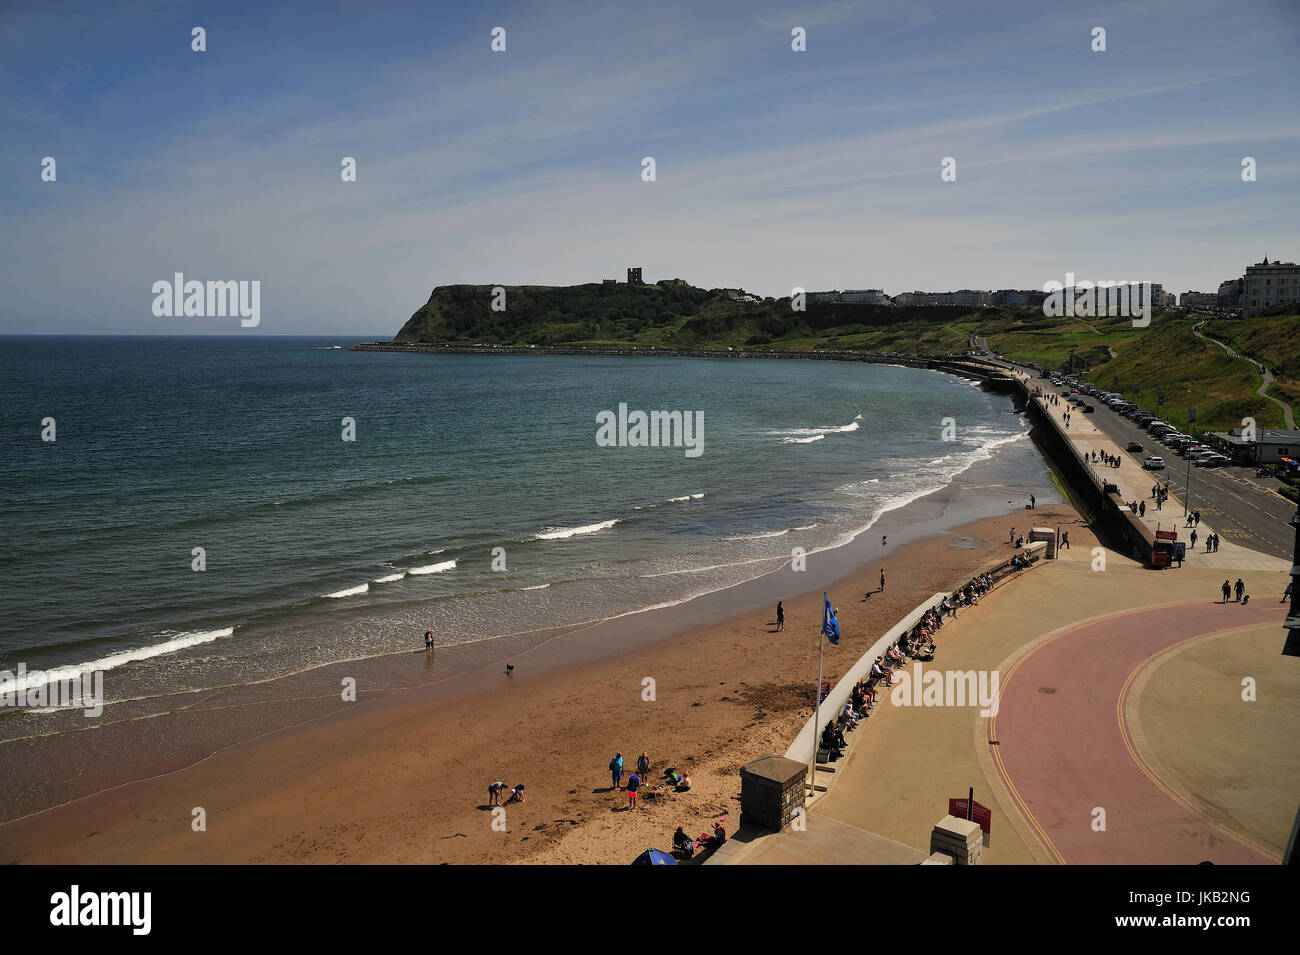 Scarborough North Bay Beach England - Stock Image